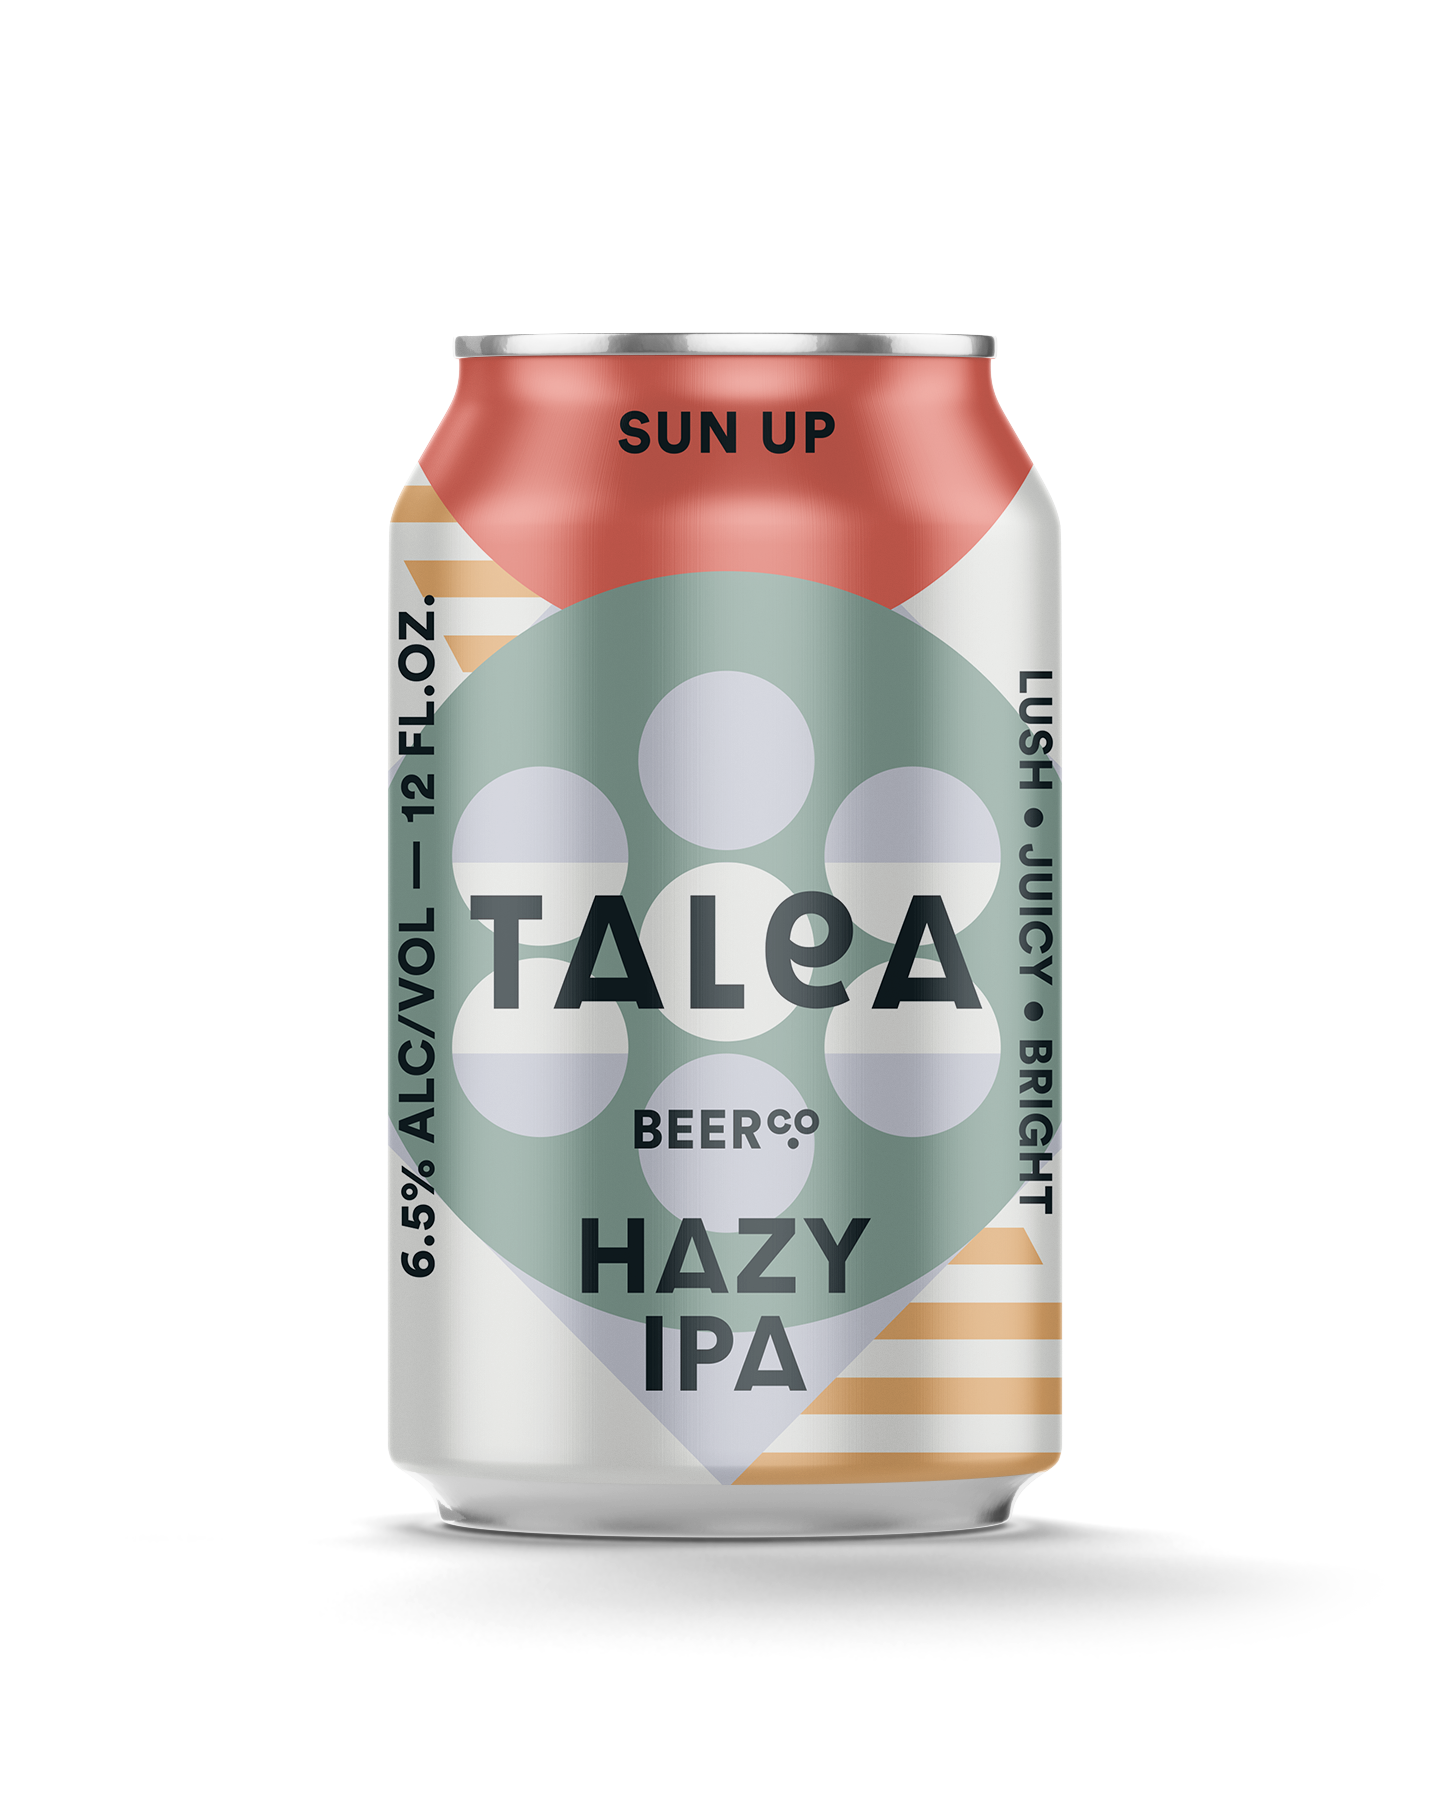 TALEA Sun Up beer Label Full Size